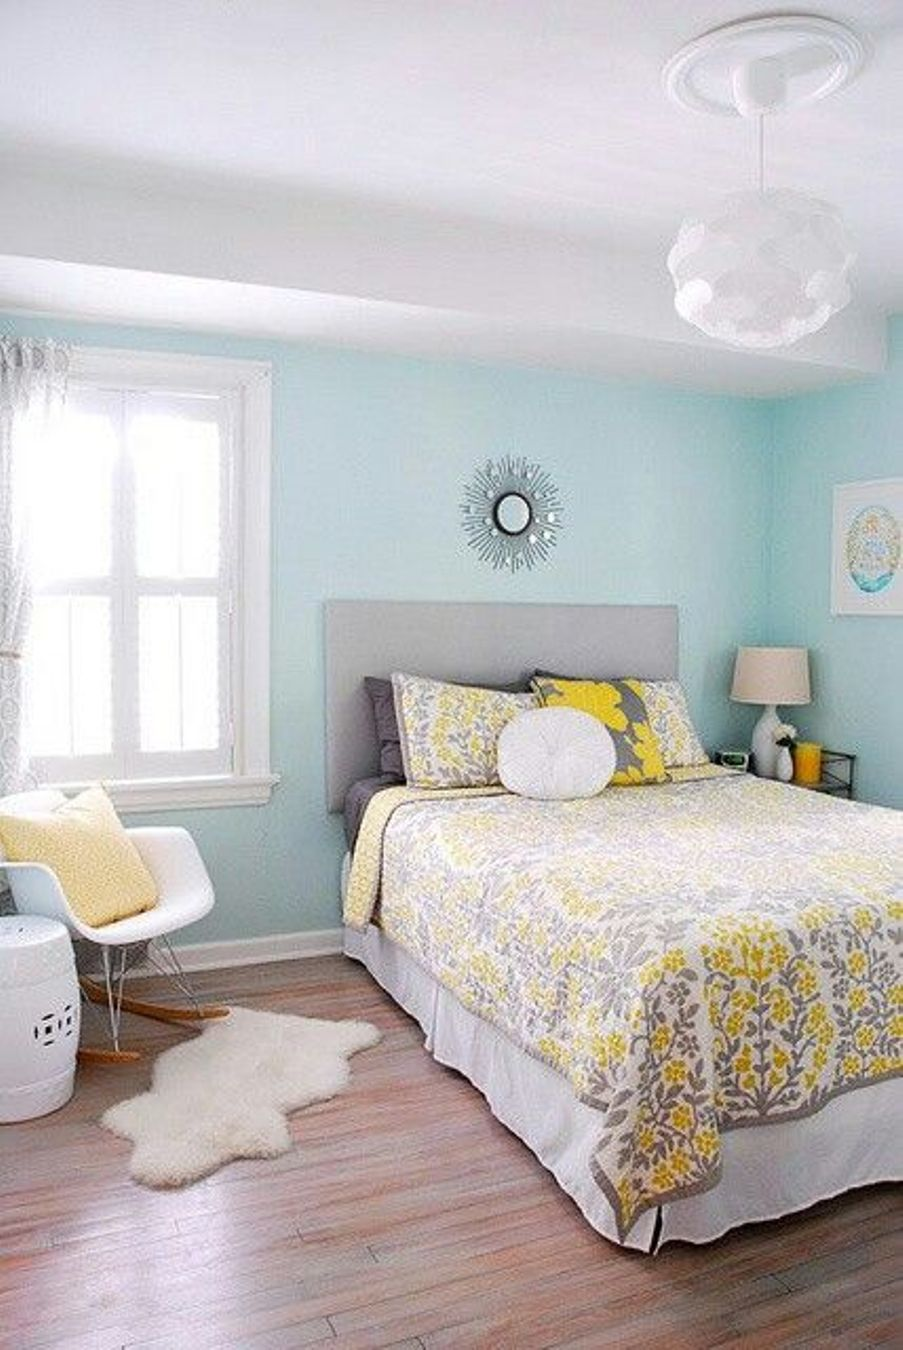 Best paint colors for small room some tips homesfeed for Best wall paint colors